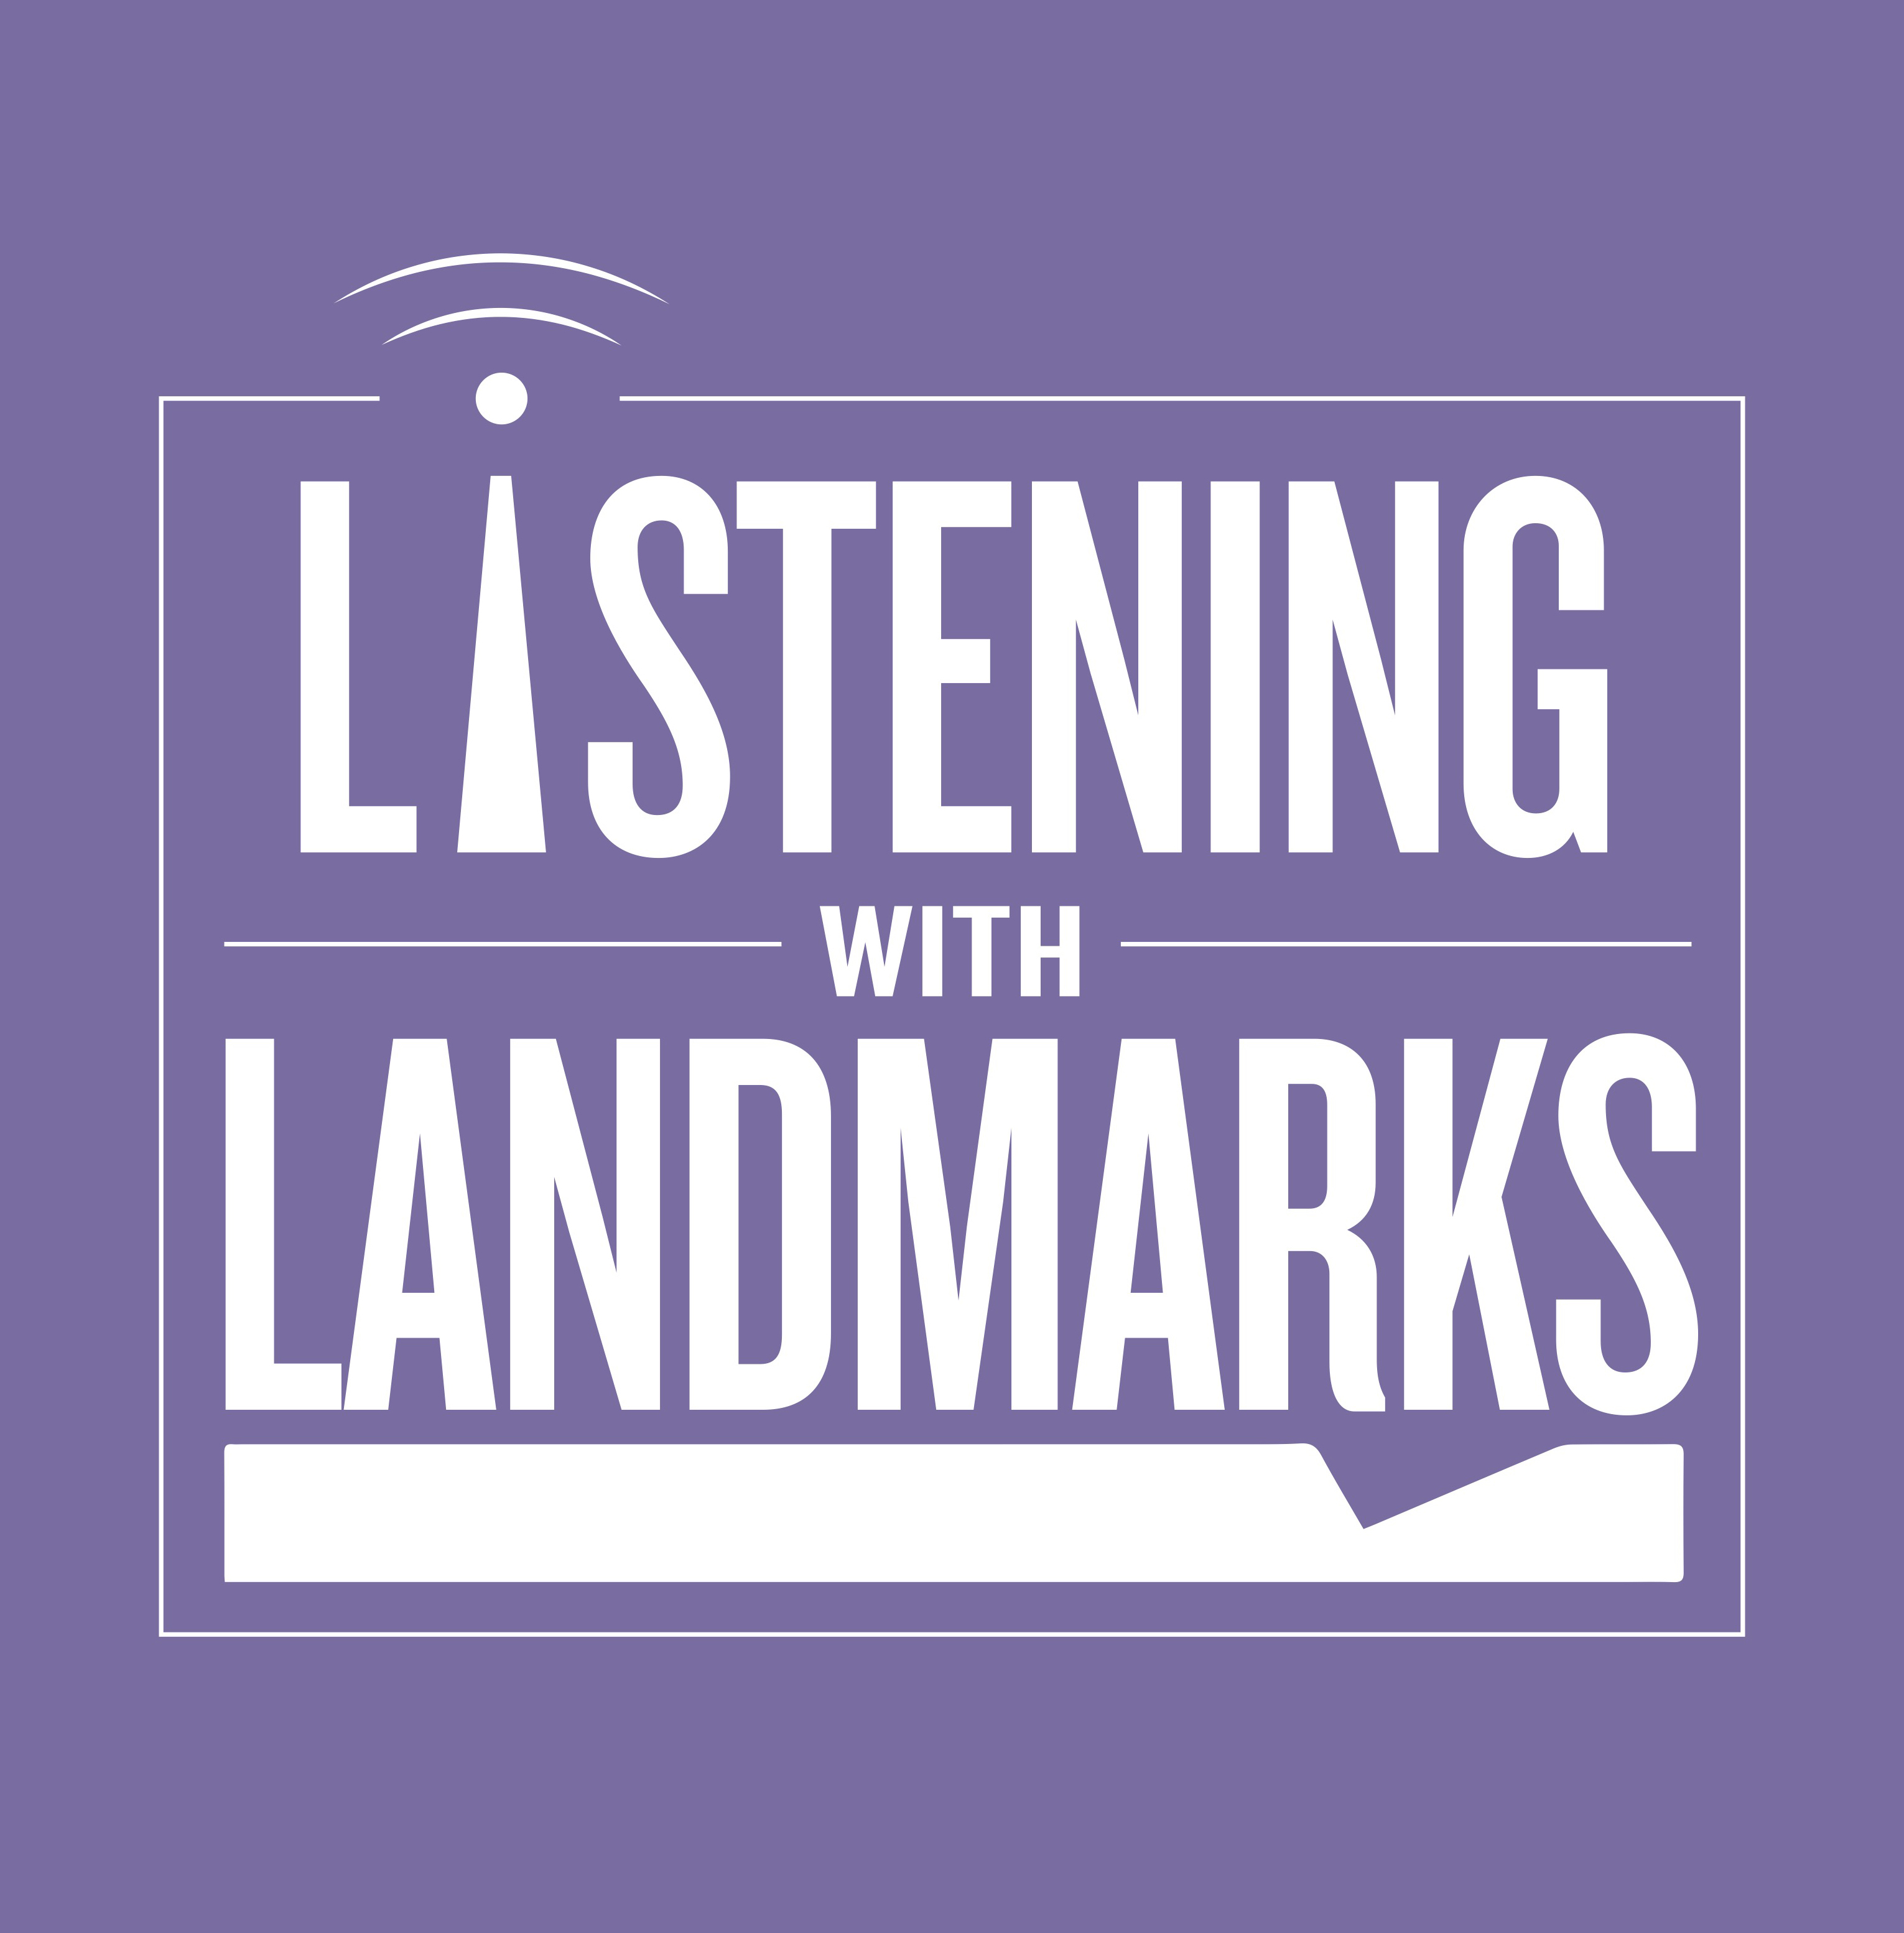 The Listening with Landmarks Logo which makes the I in Listening into a radio tower. The logo is white on a purple ground.